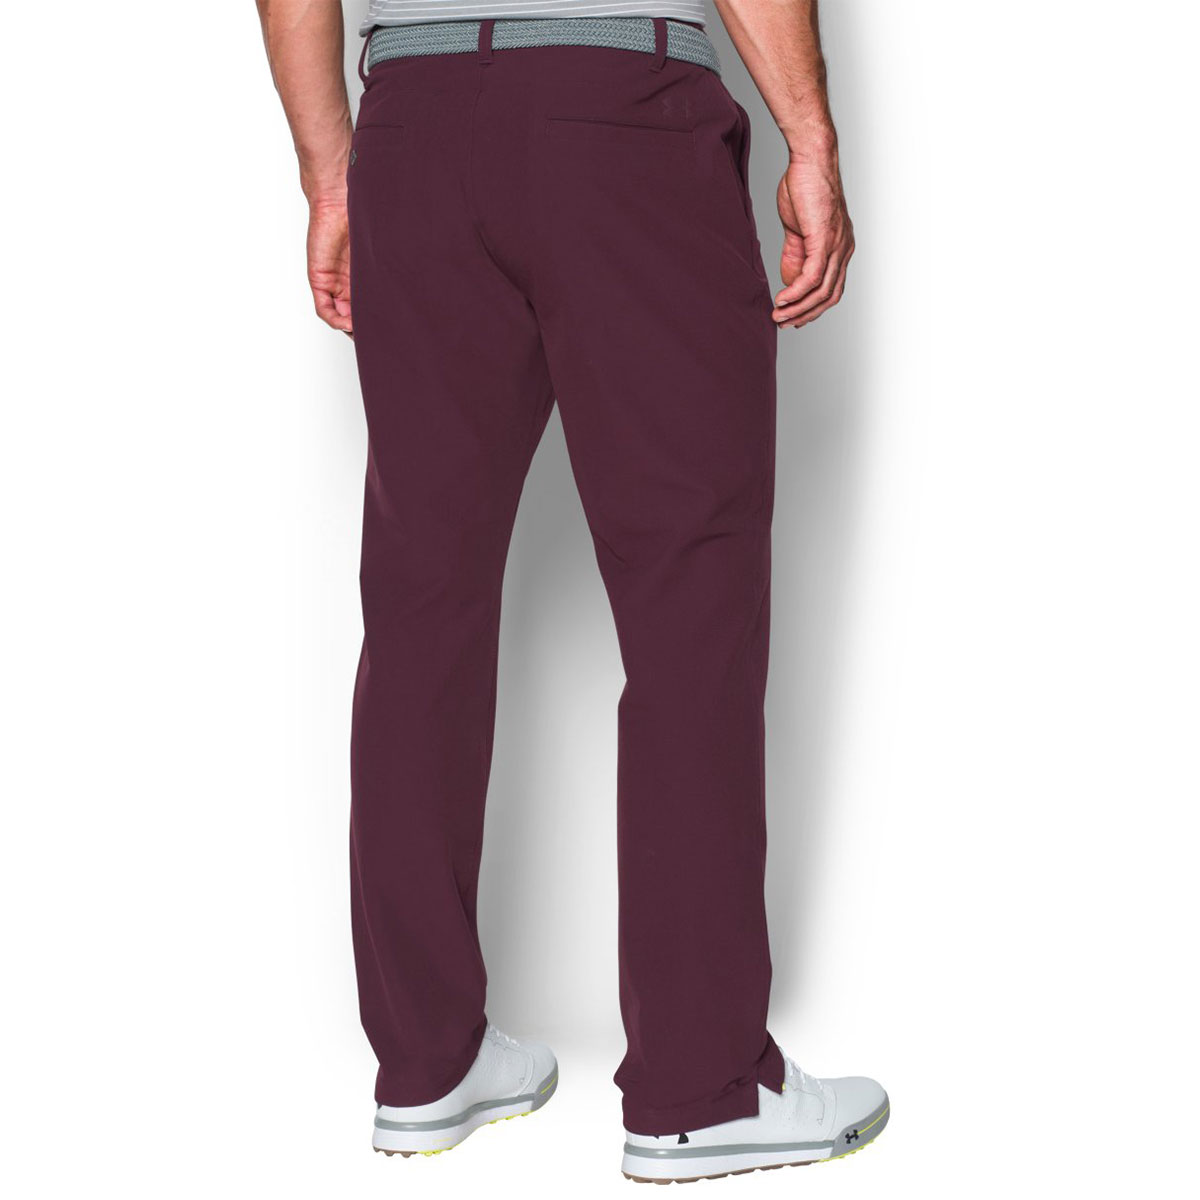 Under-Armour-Mens-Match-Play-ColdGear-Infrared-Taper-Golf-Trousers-52-OFF-RRP thumbnail 15